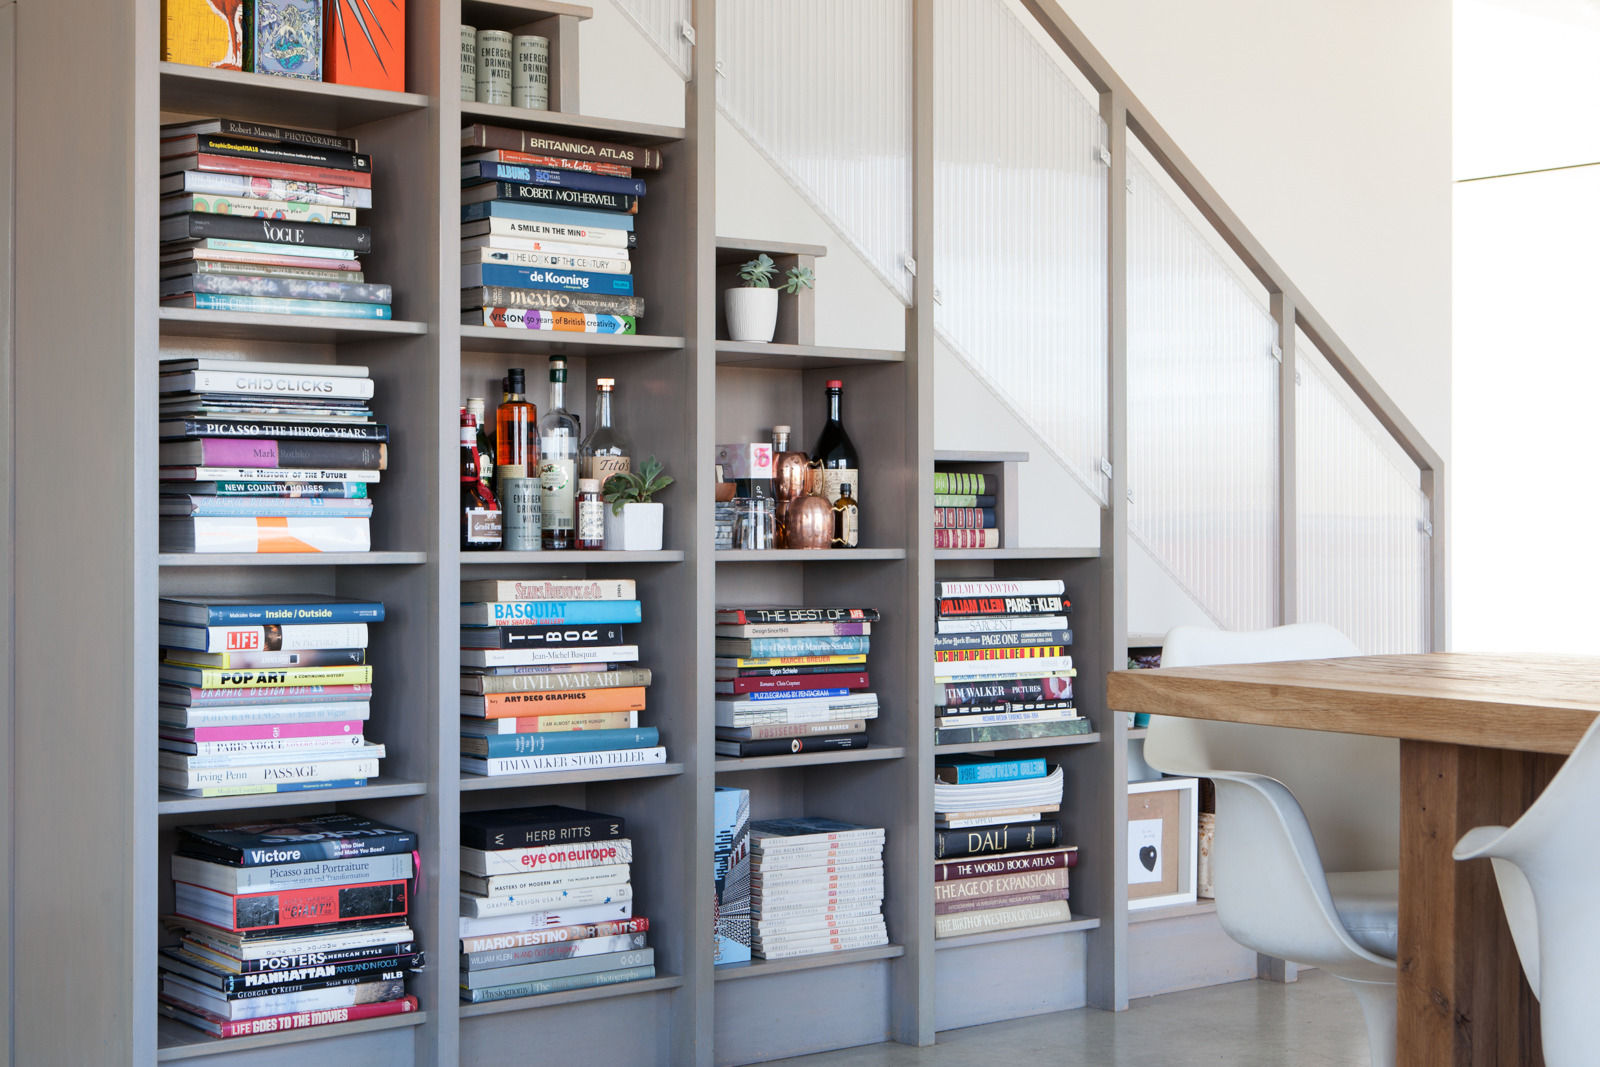 Built-in book shelves under a stairway provide smart display and storage space for books, booze, and bits in a space designed by Leanne Ford. #midcentury #boho #edgy #rusticdecor